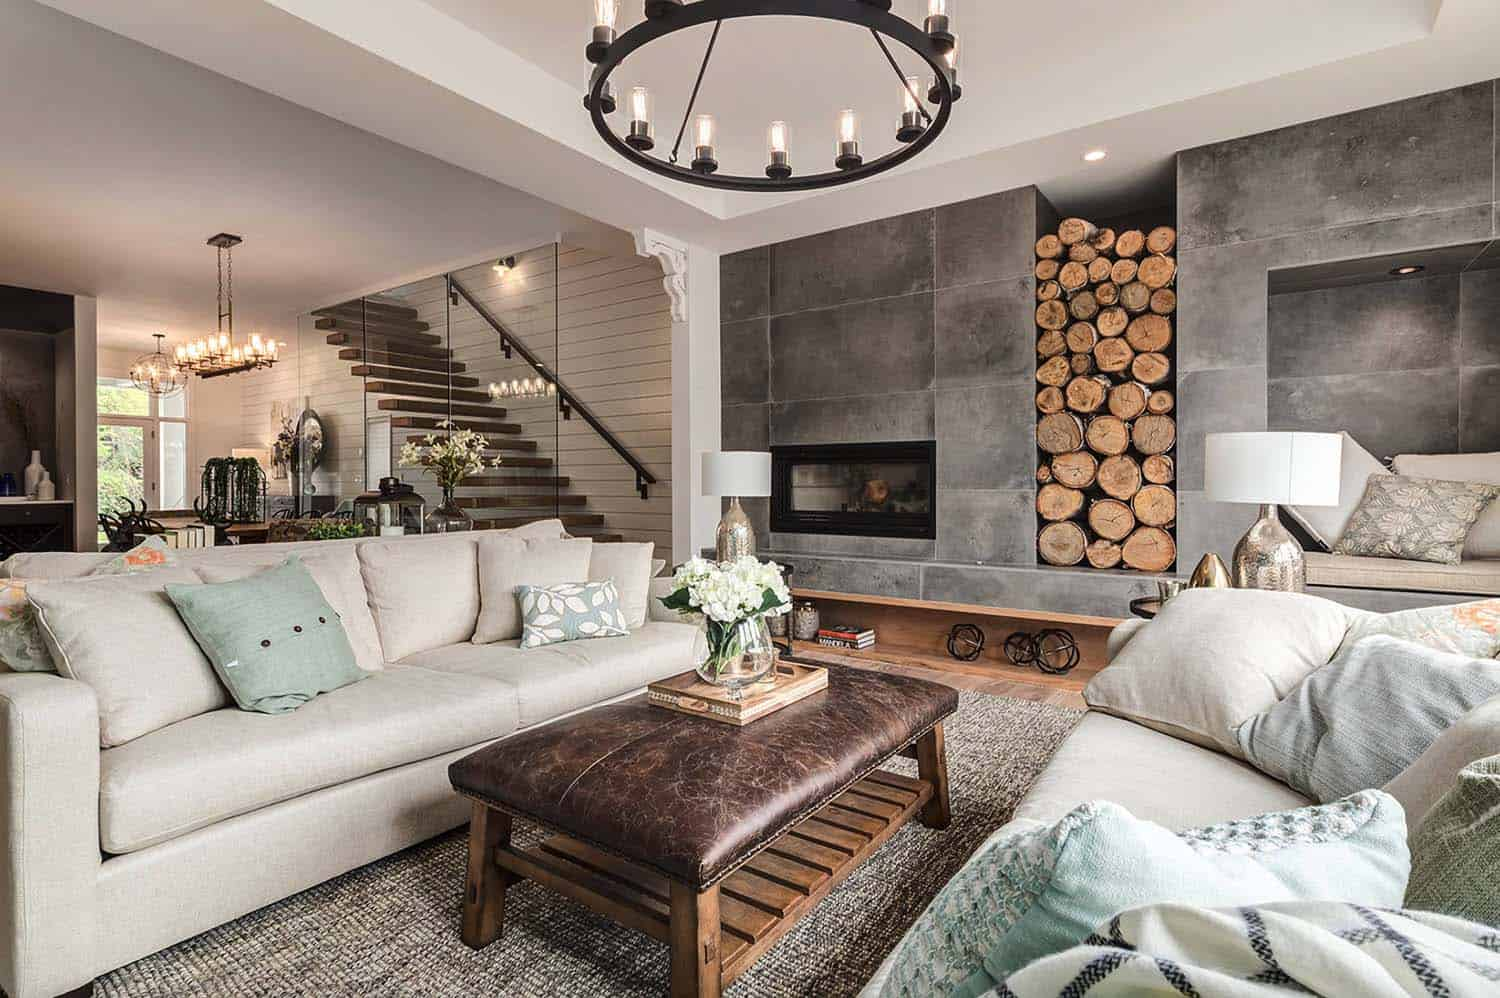 surprising farmhouse style decorating living room | Calgary home radiates with fresh, modern farmhouse style